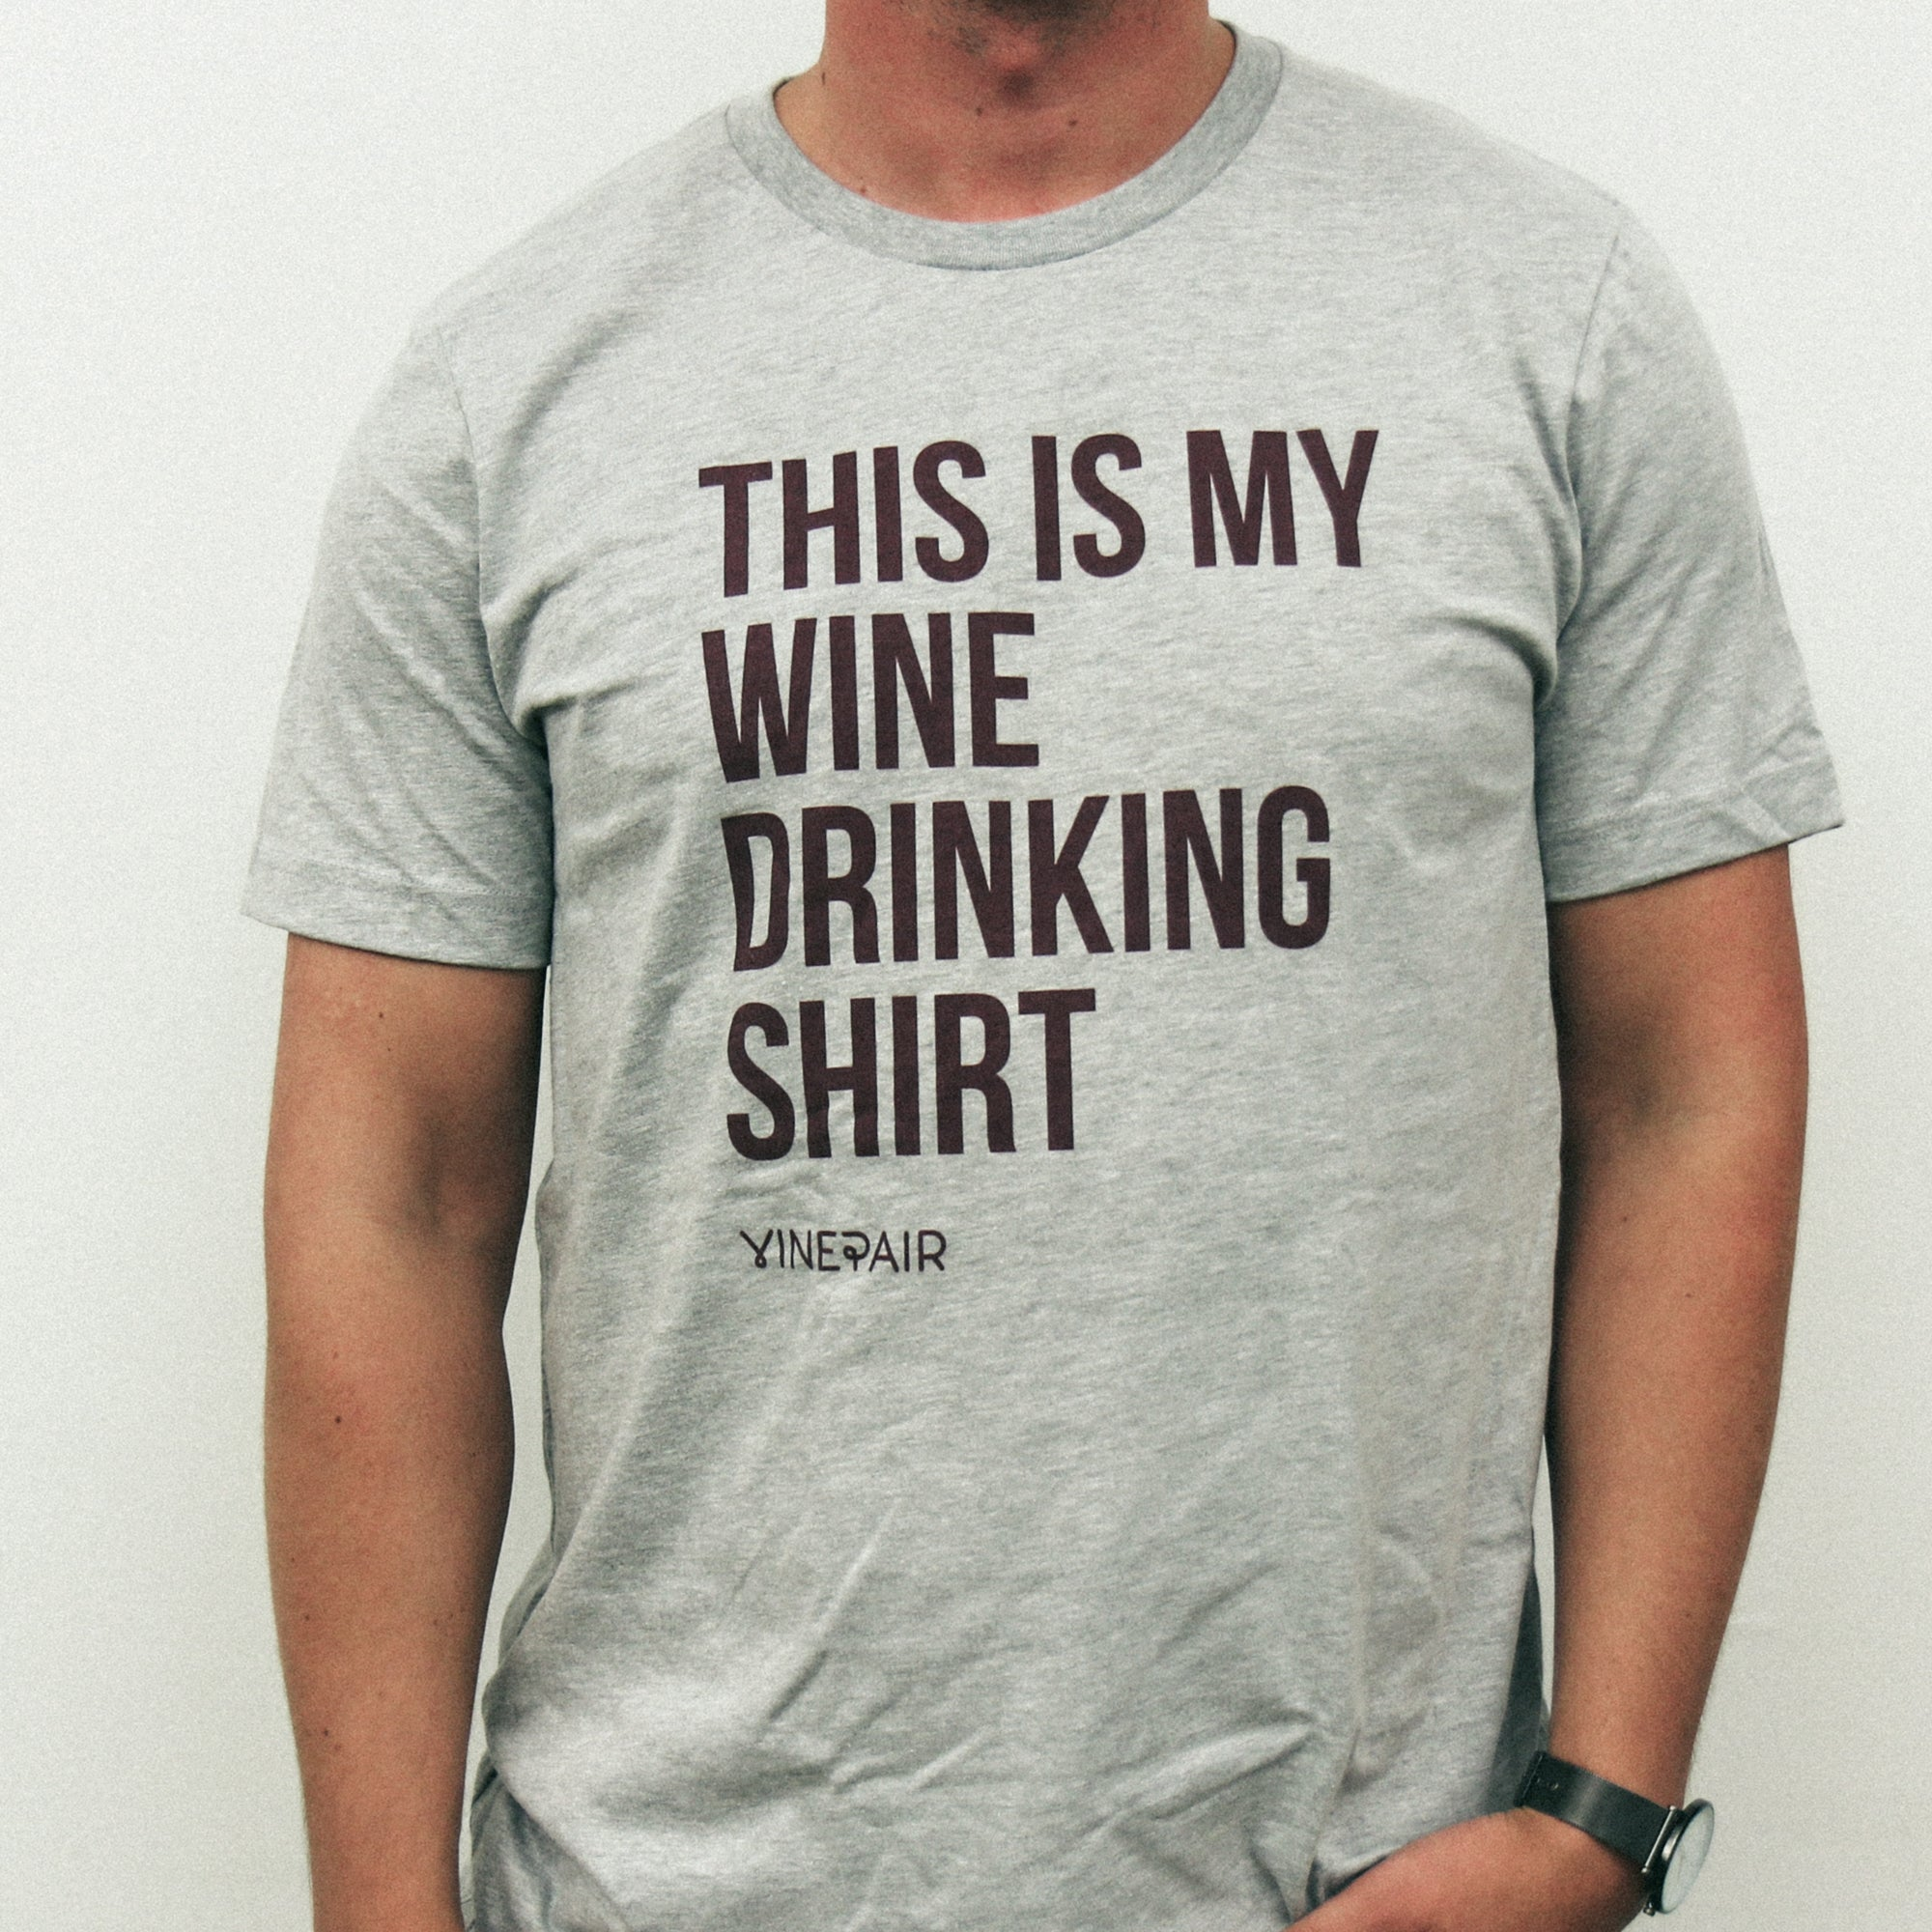 My Wine Drinking T-Shirt